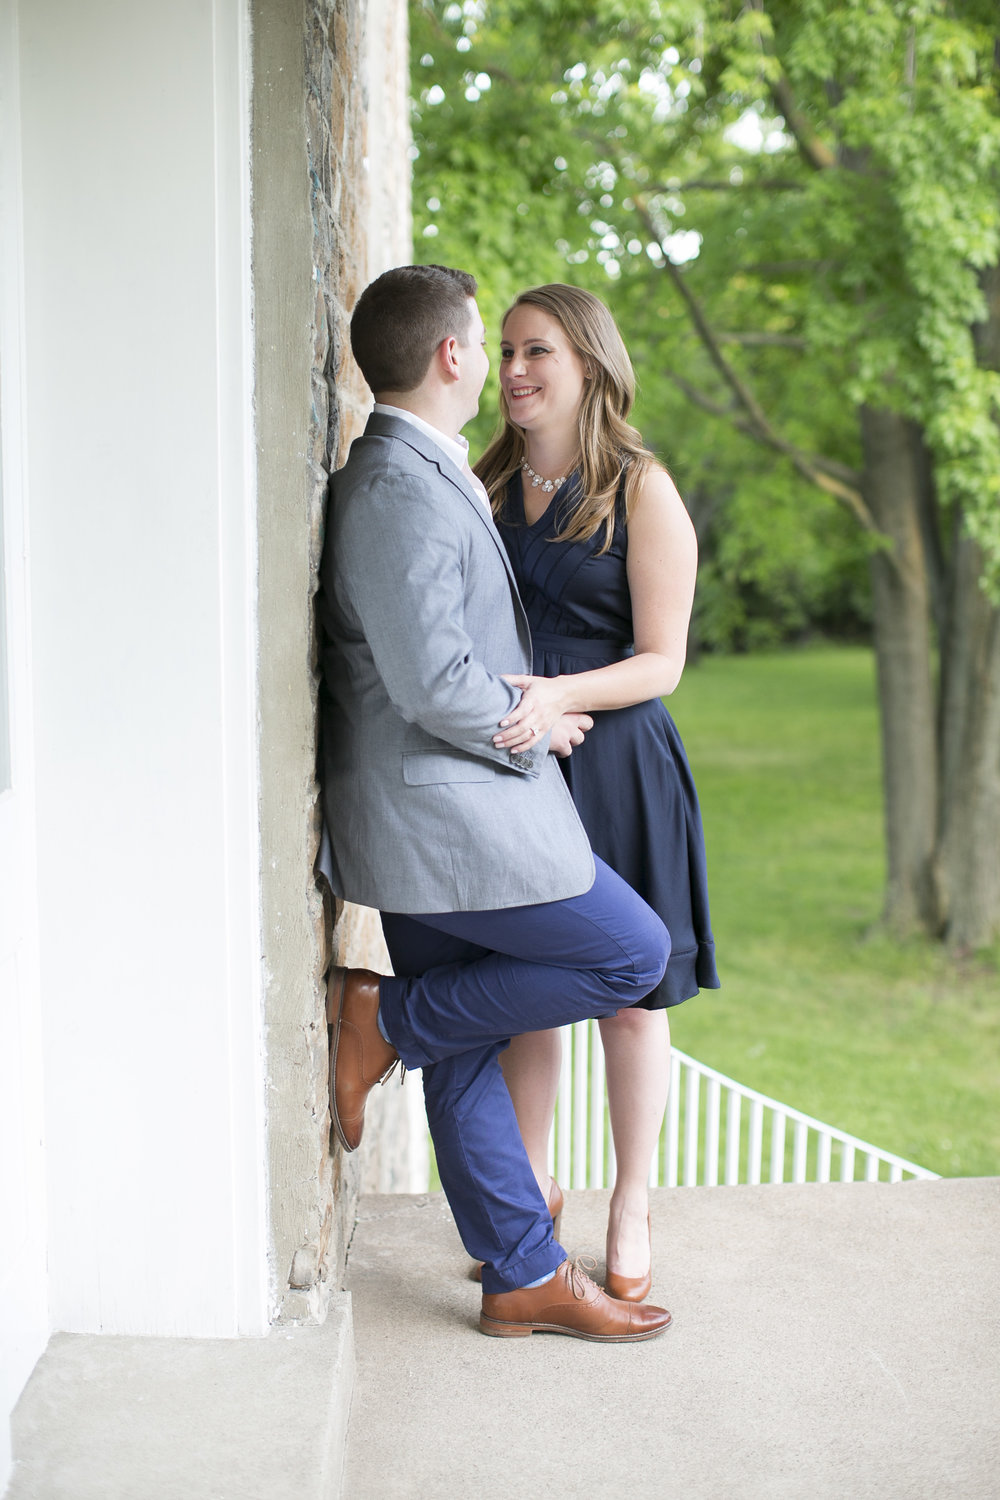 Niagara-on-the-Lake-Summer-Engagement-photos-by-Philosophy-Studios007.JPG